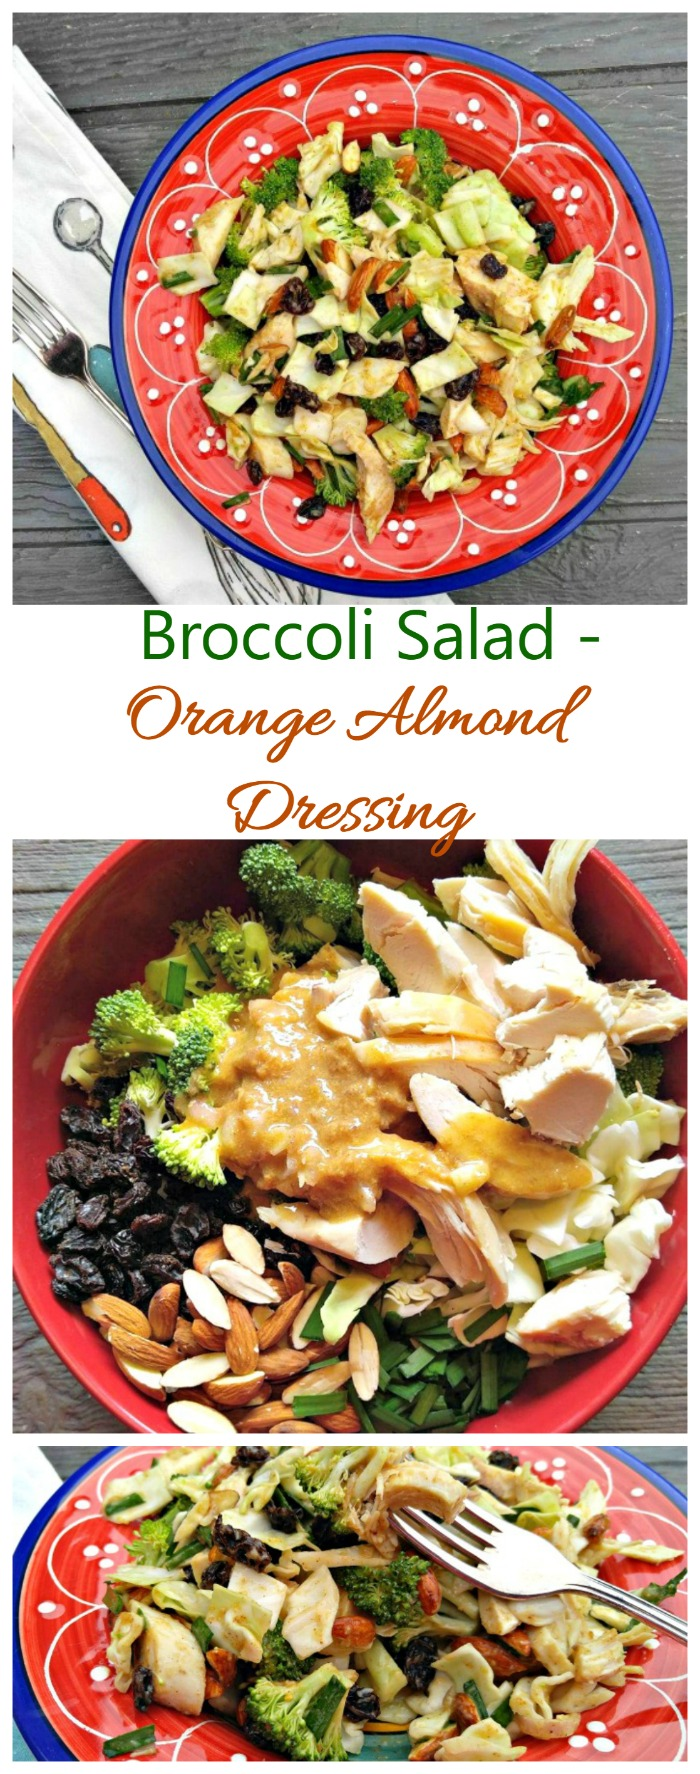 This broccoli salad has a delicious home made orange and almond butter dressing. It's ready in 15 minutes and super tasty.